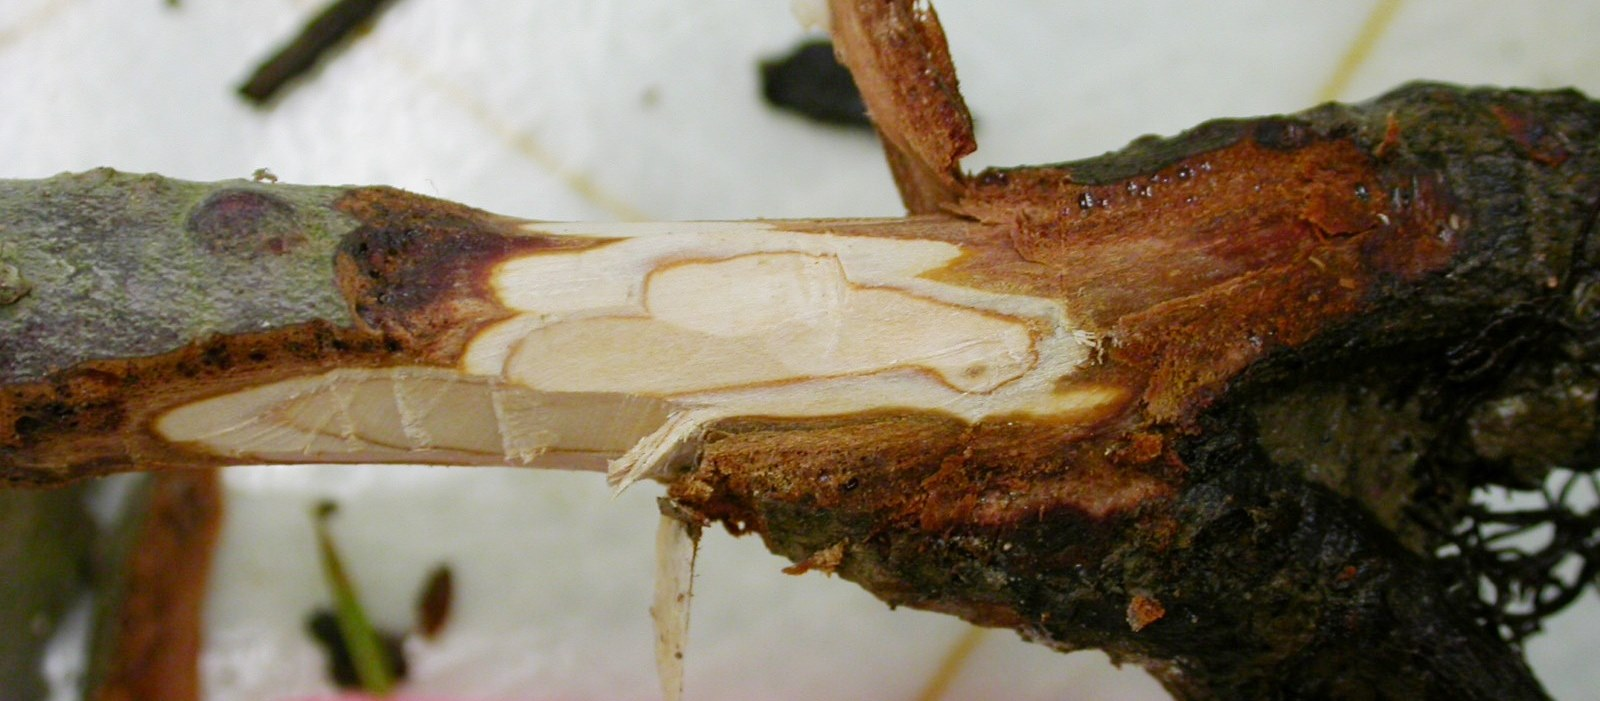 Extensive External And Internal Darkening Of Root Tissue Is Typical Phytophthora Rot